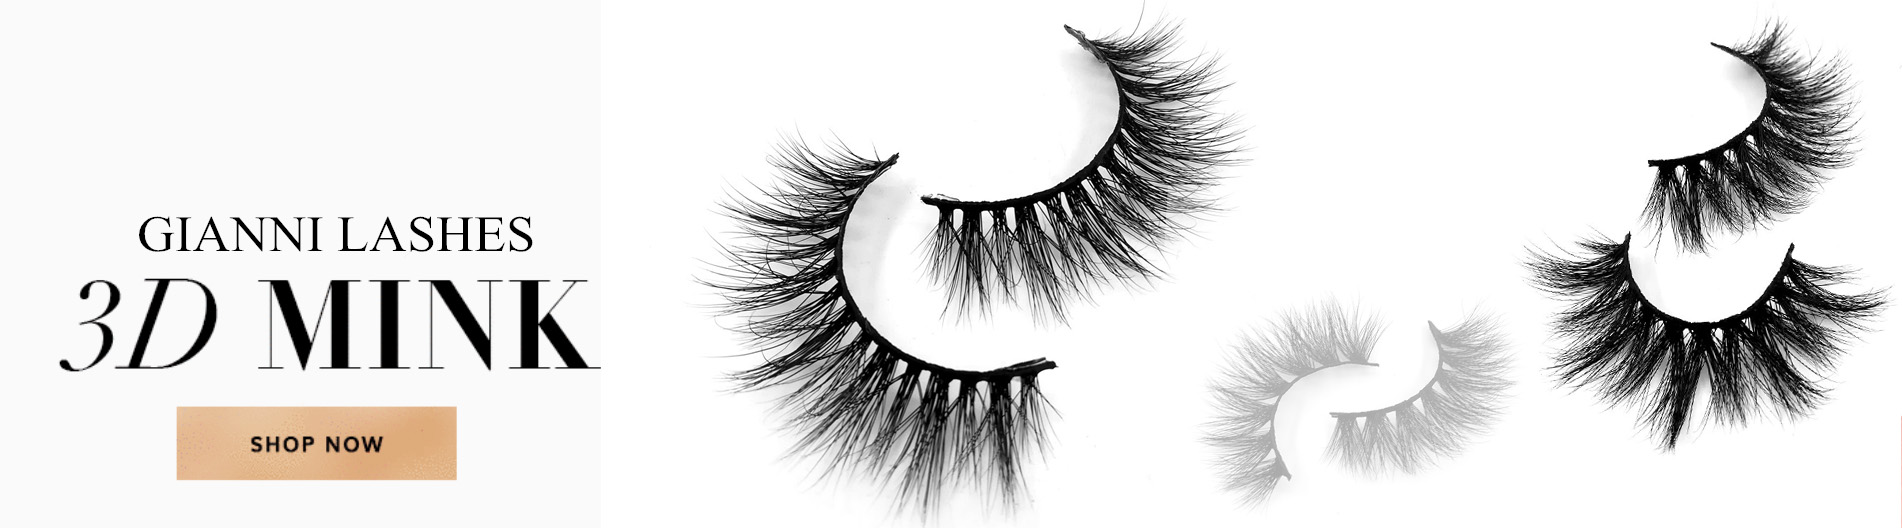 Best Wholesale Mink Lashes Gianni Lashes